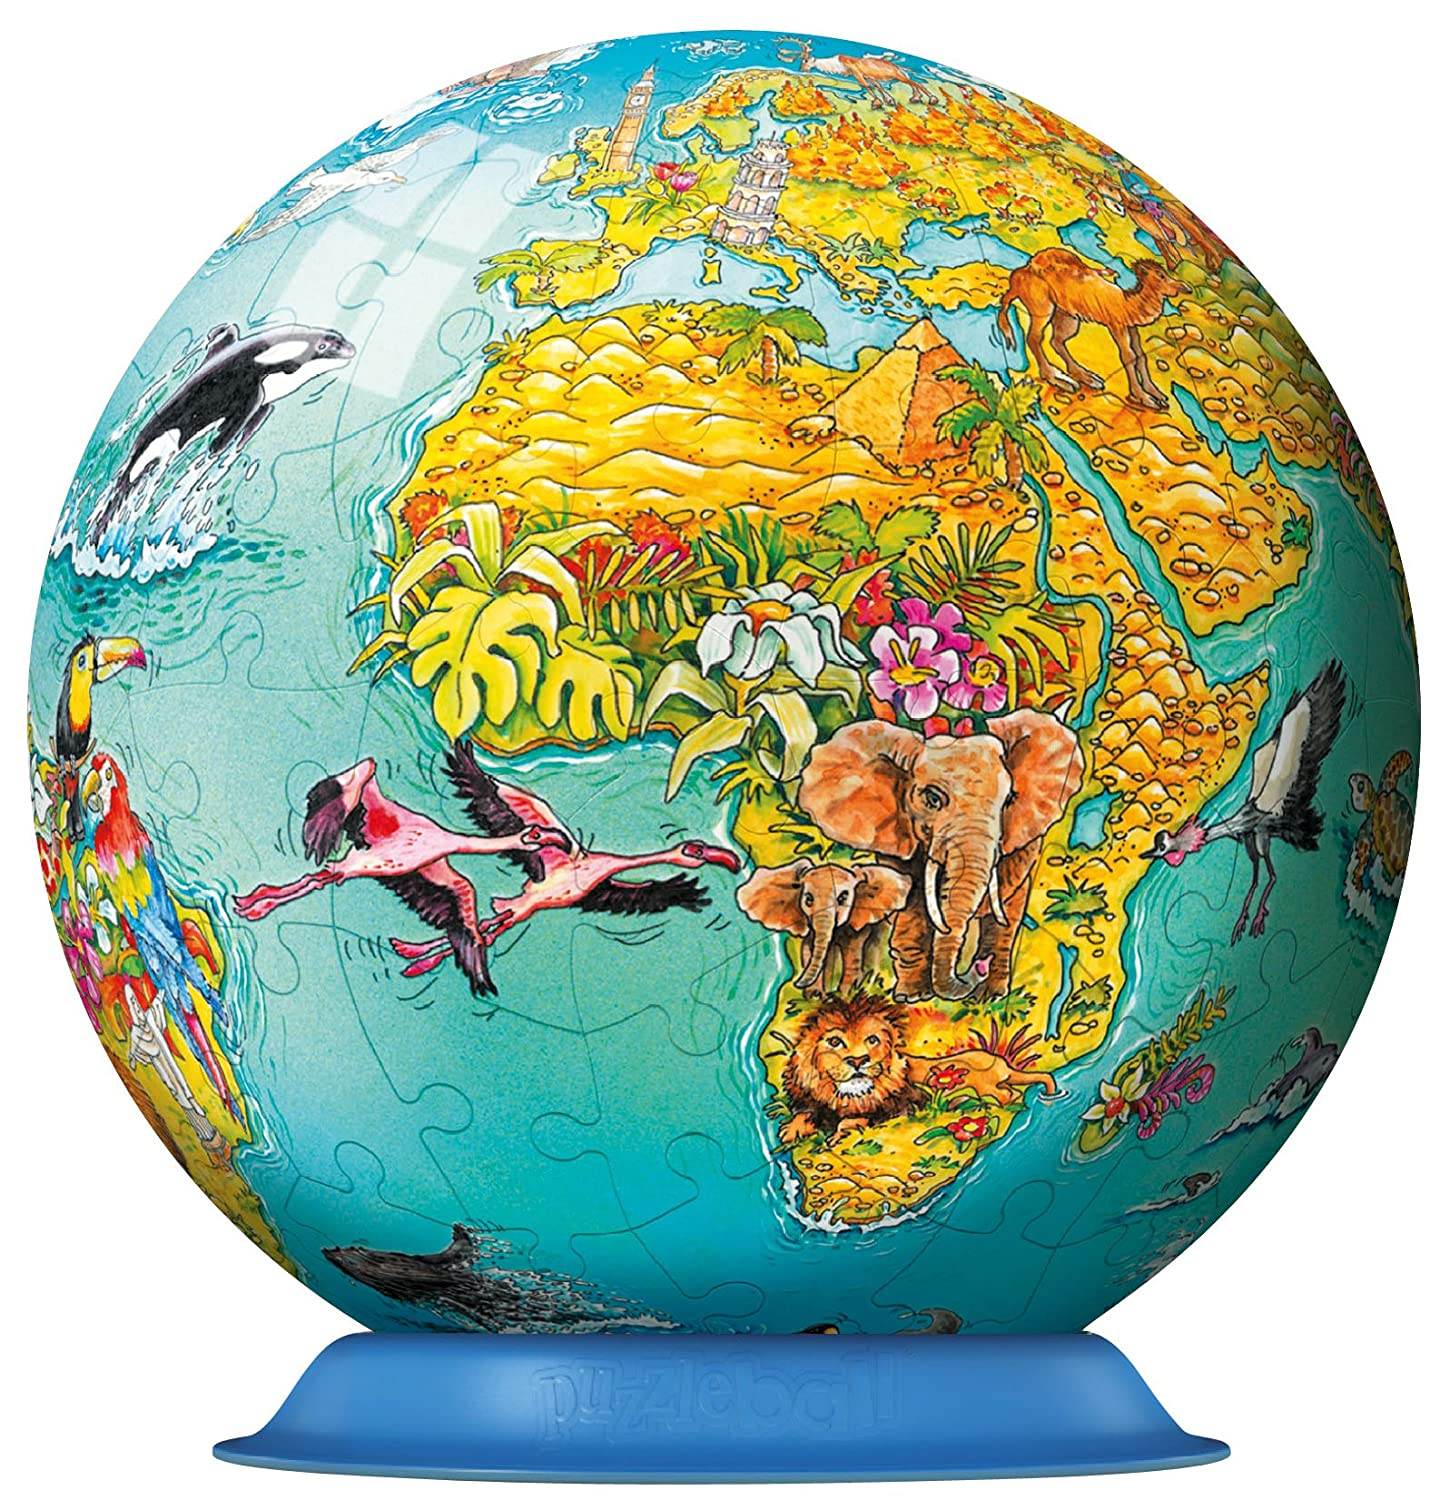 Amazon ravensburger childrens world map 108 piece childrens amazon ravensburger childrens world map 108 piece childrens puzzleball toys games gumiabroncs Image collections